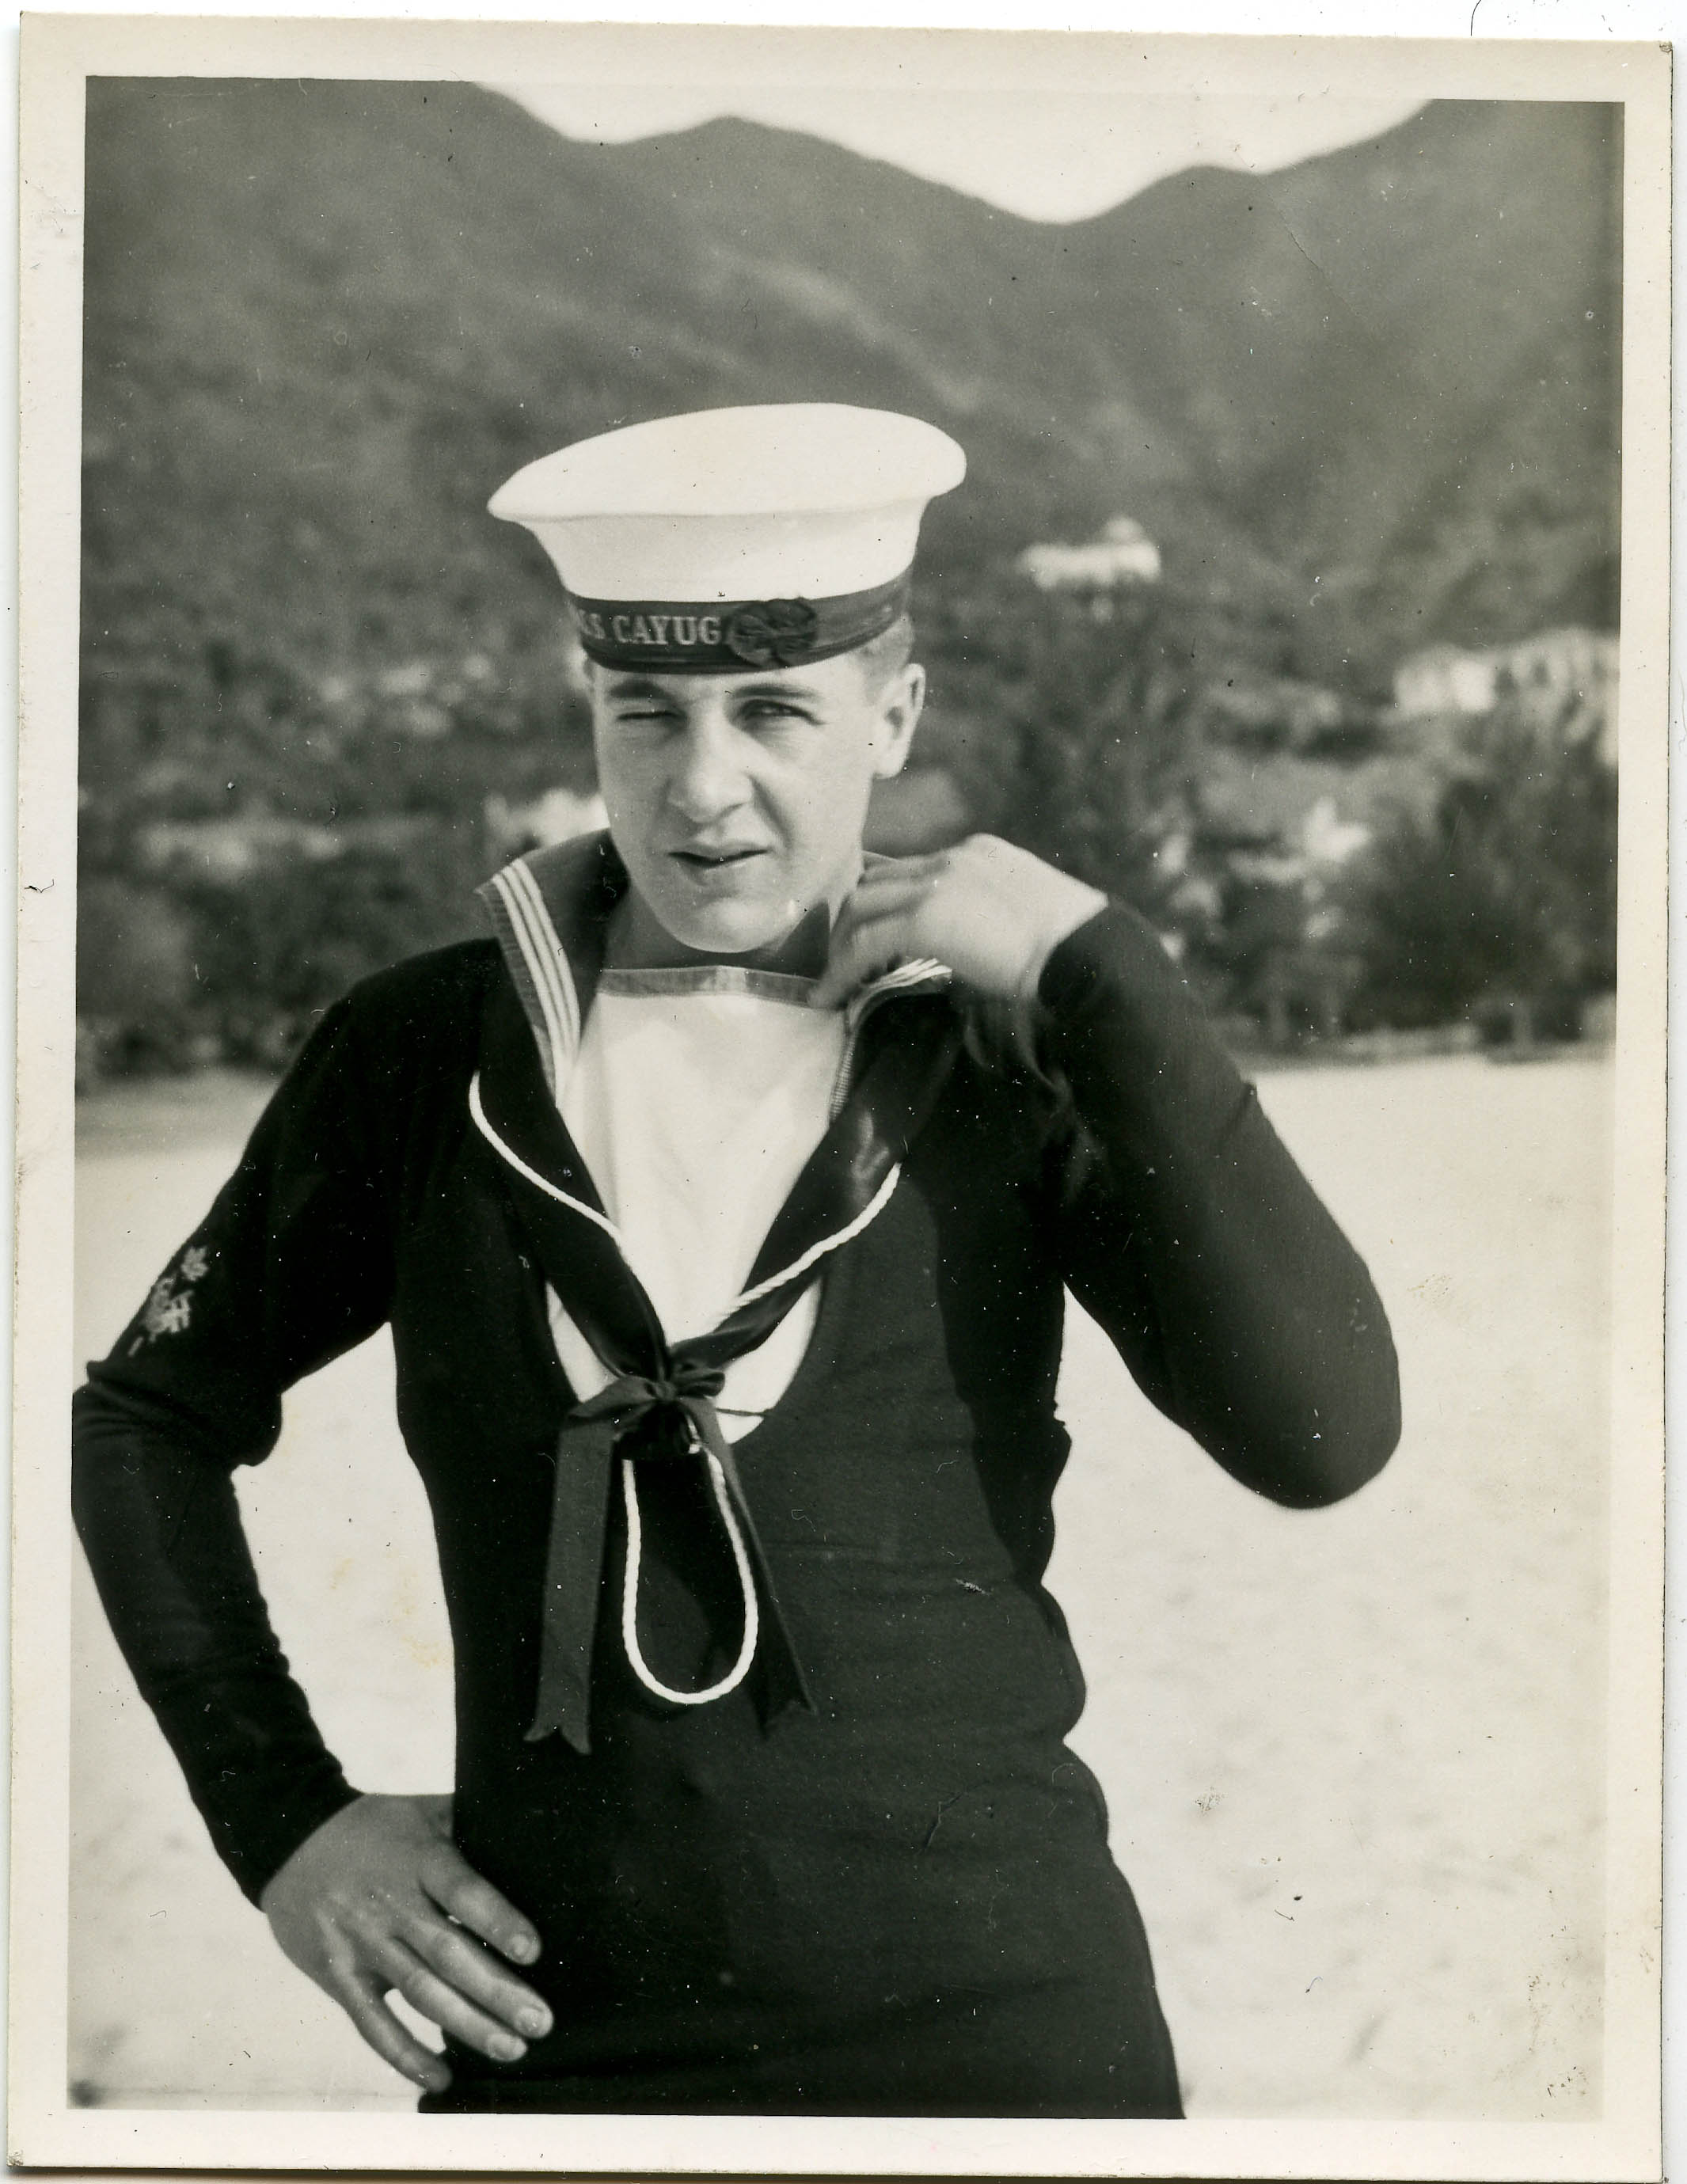 Sailor Leonard Wells of HMCS Cayuga in Korea, 1950-1952.